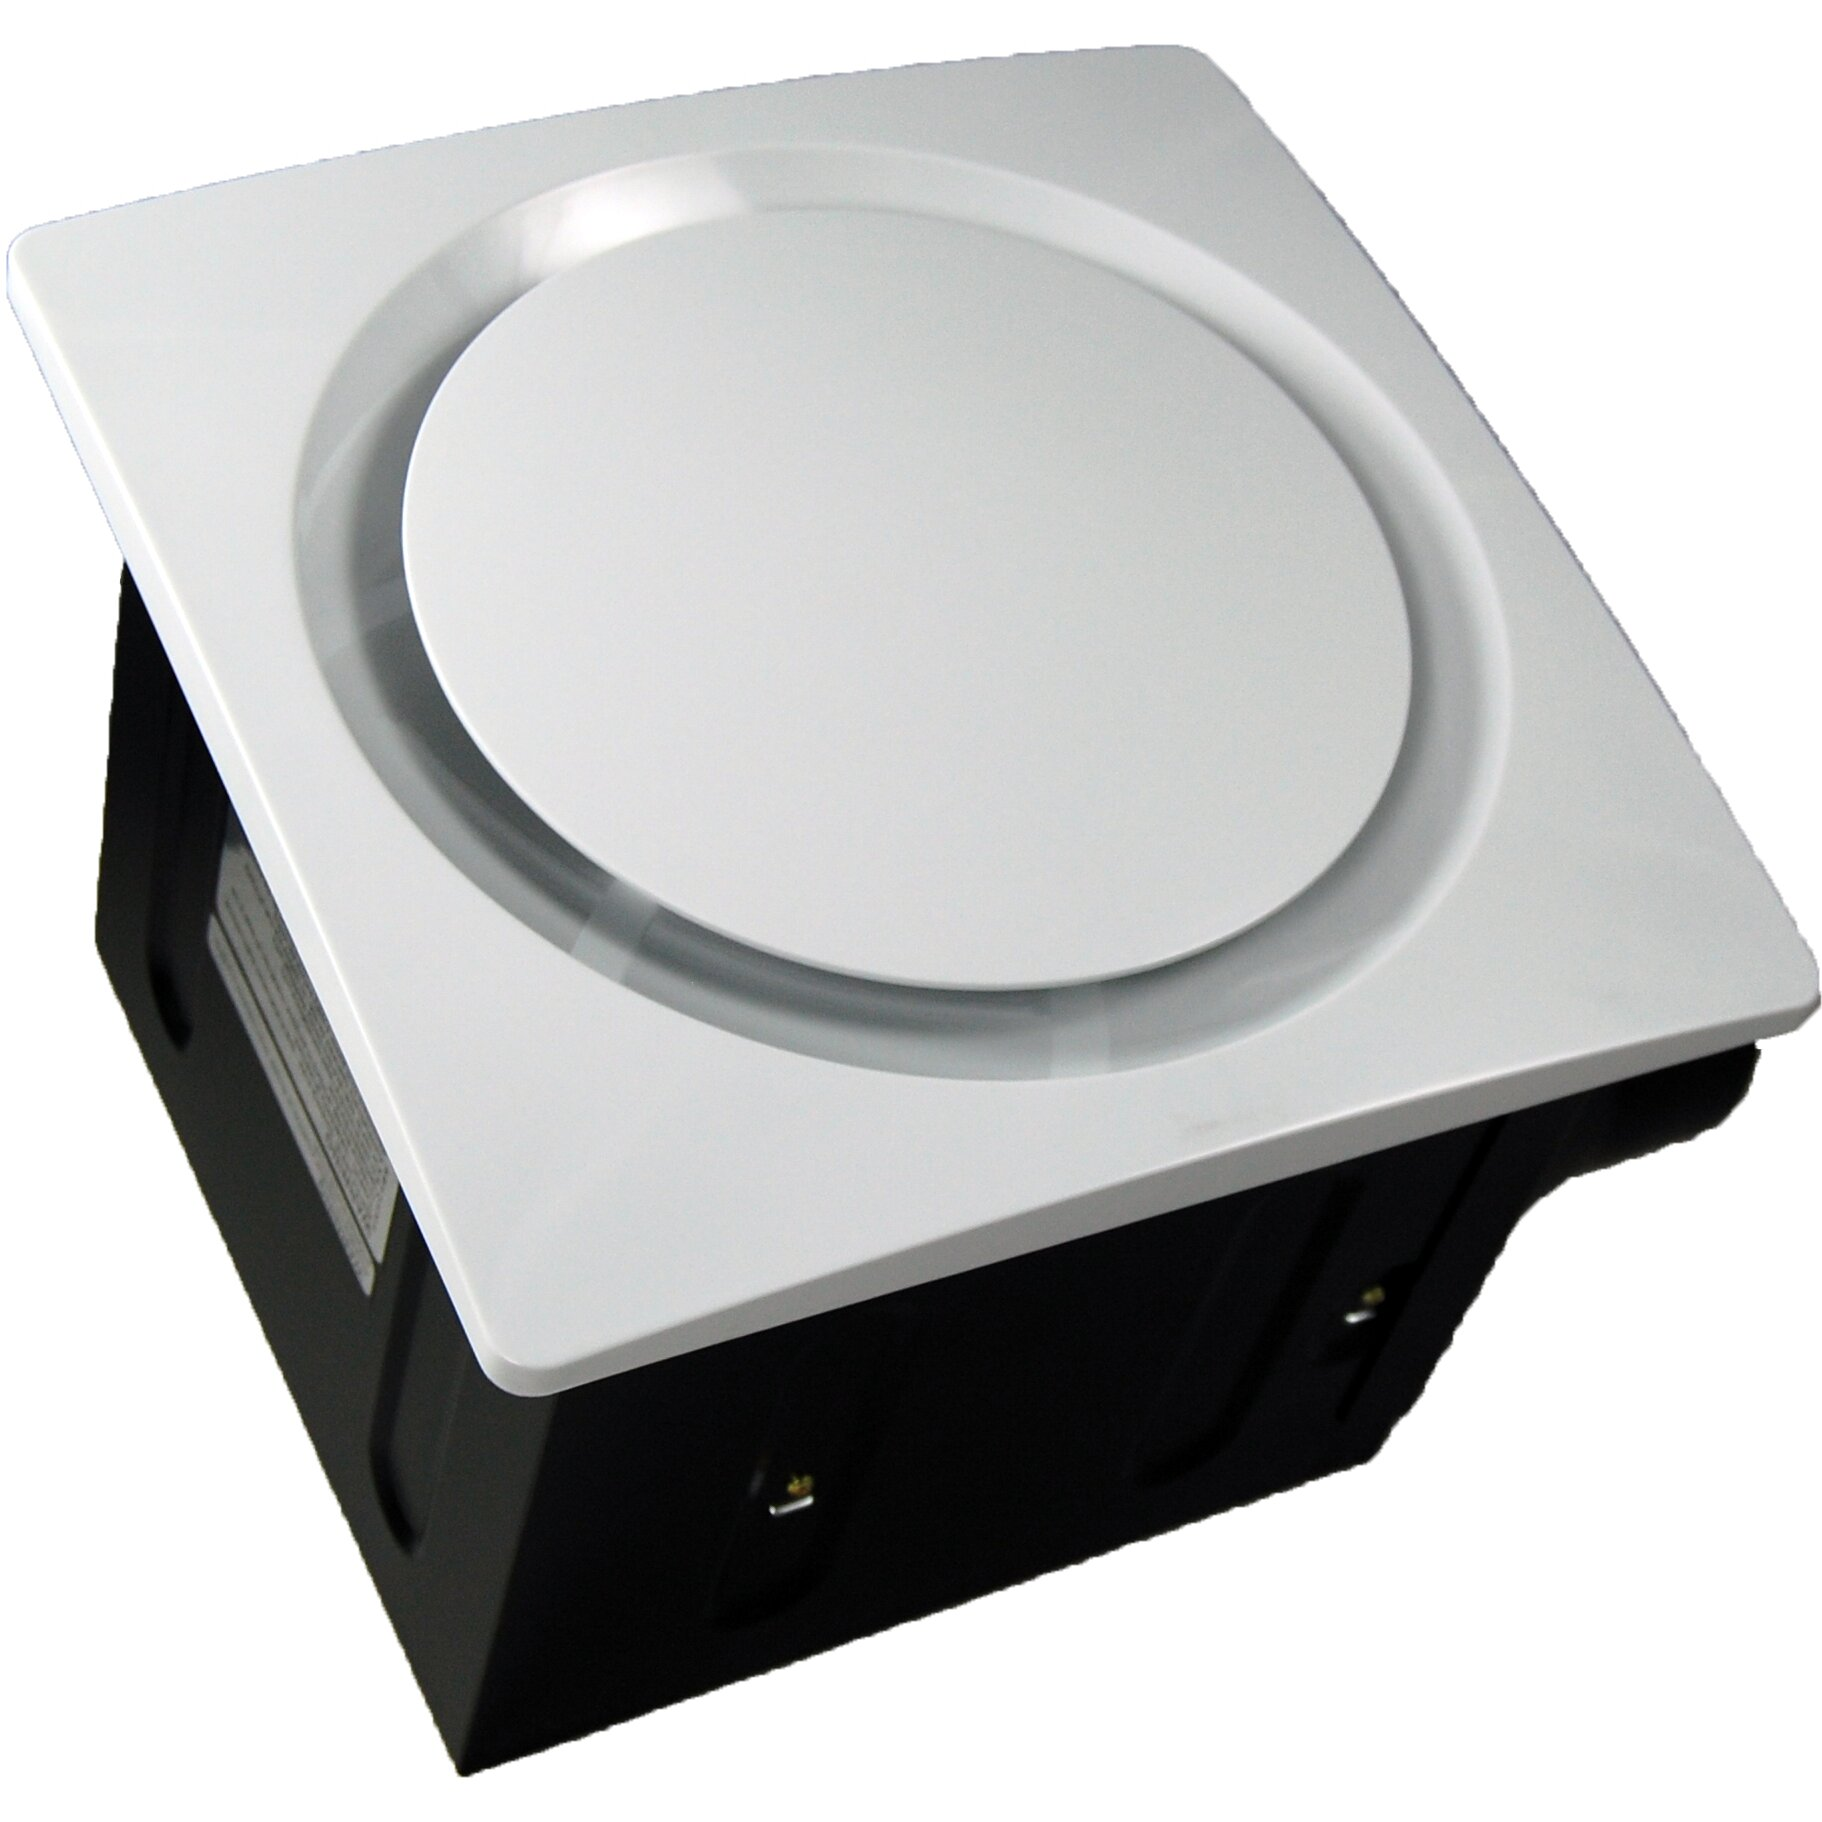 Bathroom Ventilation Fans : Aero pure super quiet cfm bathroom ventilation fan